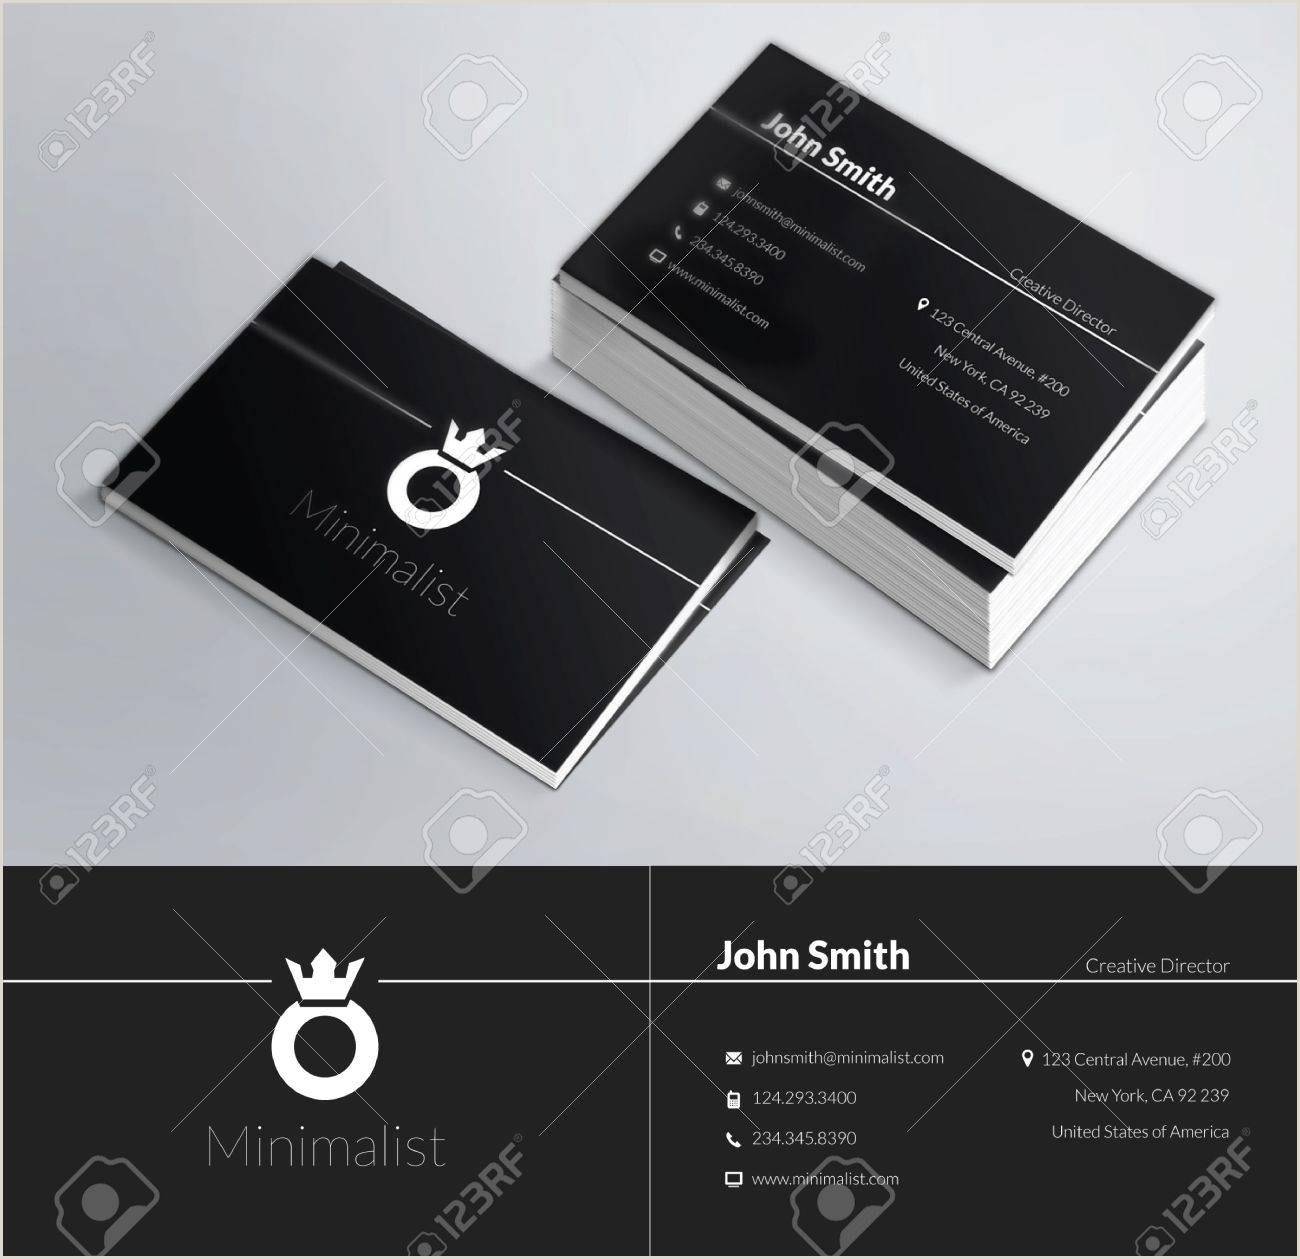 Unique Business Cards' This Is A Modern Clean And Elegant 2 Sided Business Card Perfect